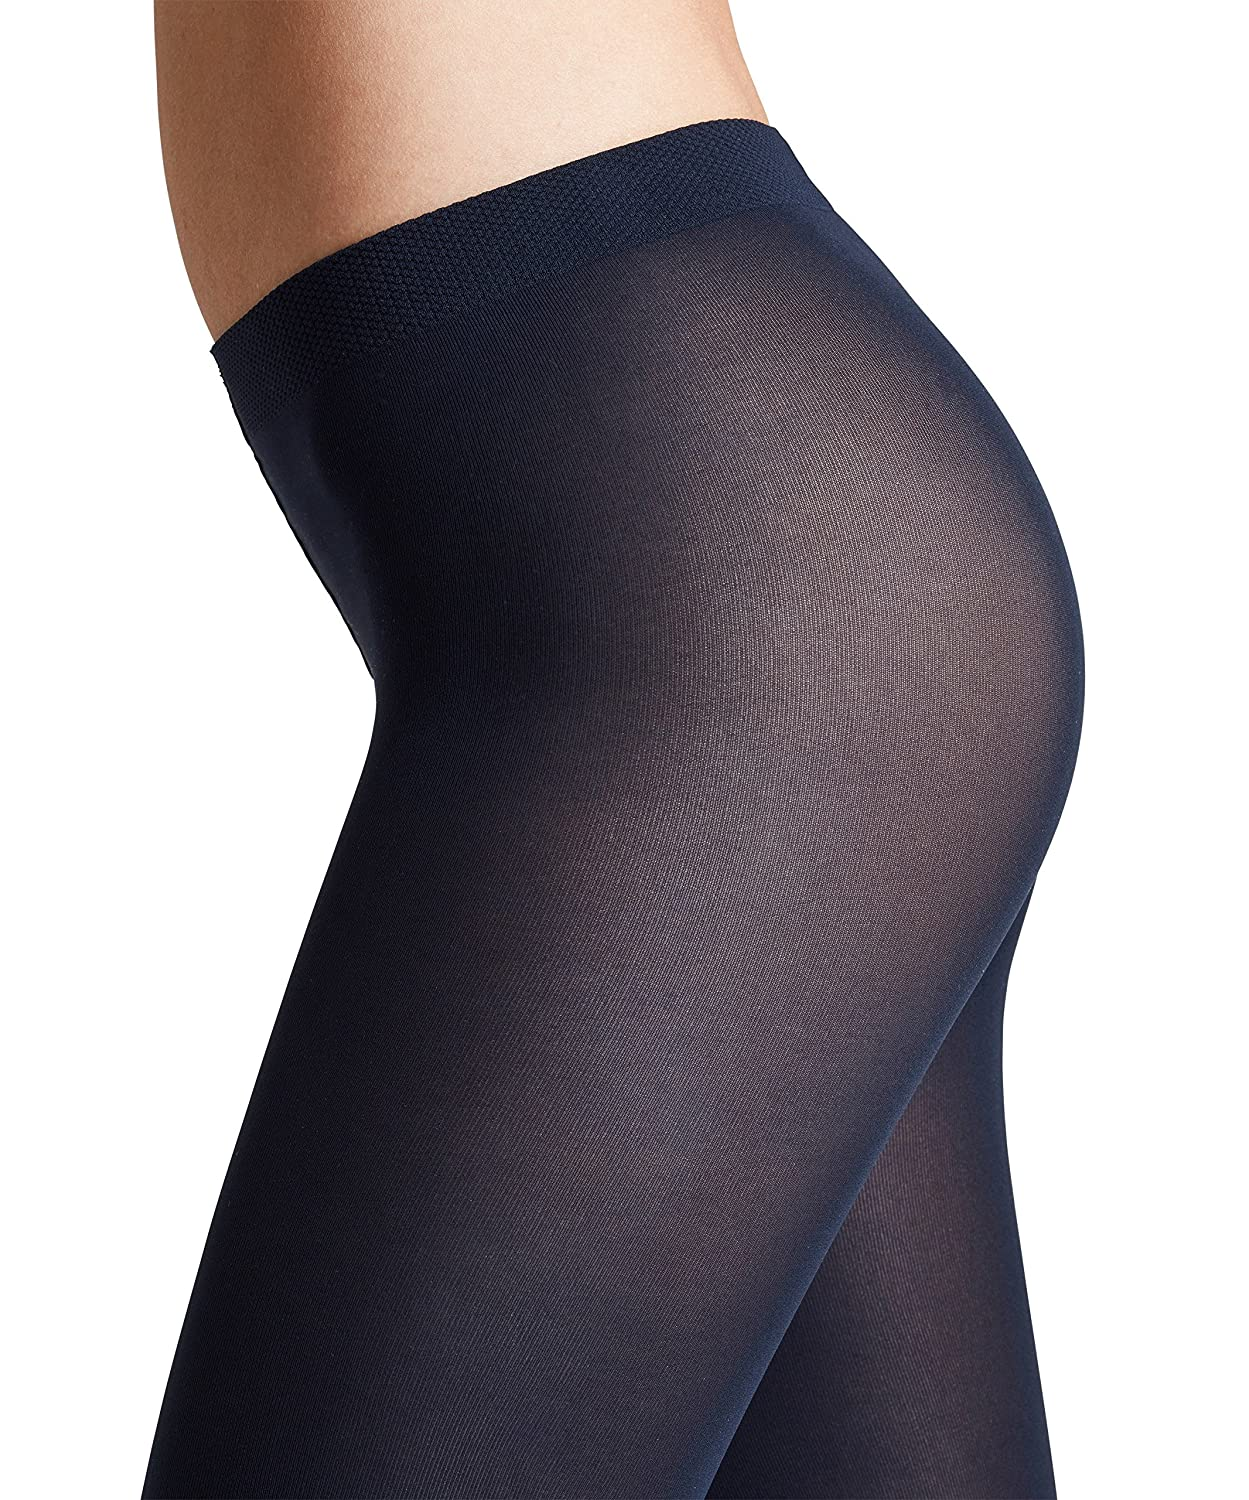 a05e049dcc746 Falke Women's Cotton Touch Tights at Amazon Women's Clothing store: